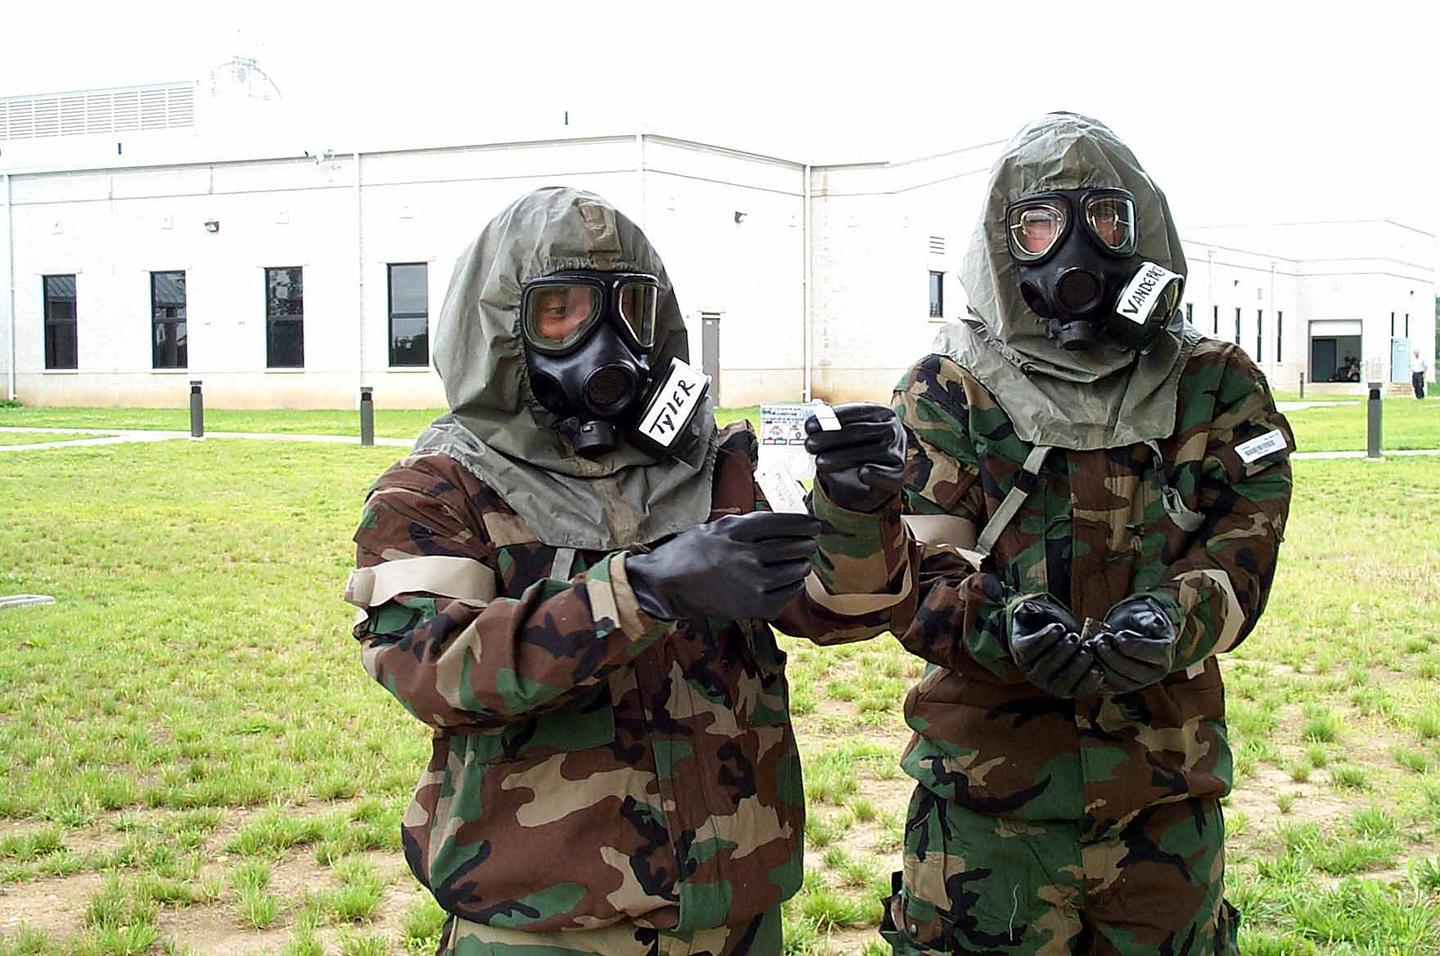 The new MOH material could be used to make better gas masks and suits for soldiers and emergency responders (Image: US Army)